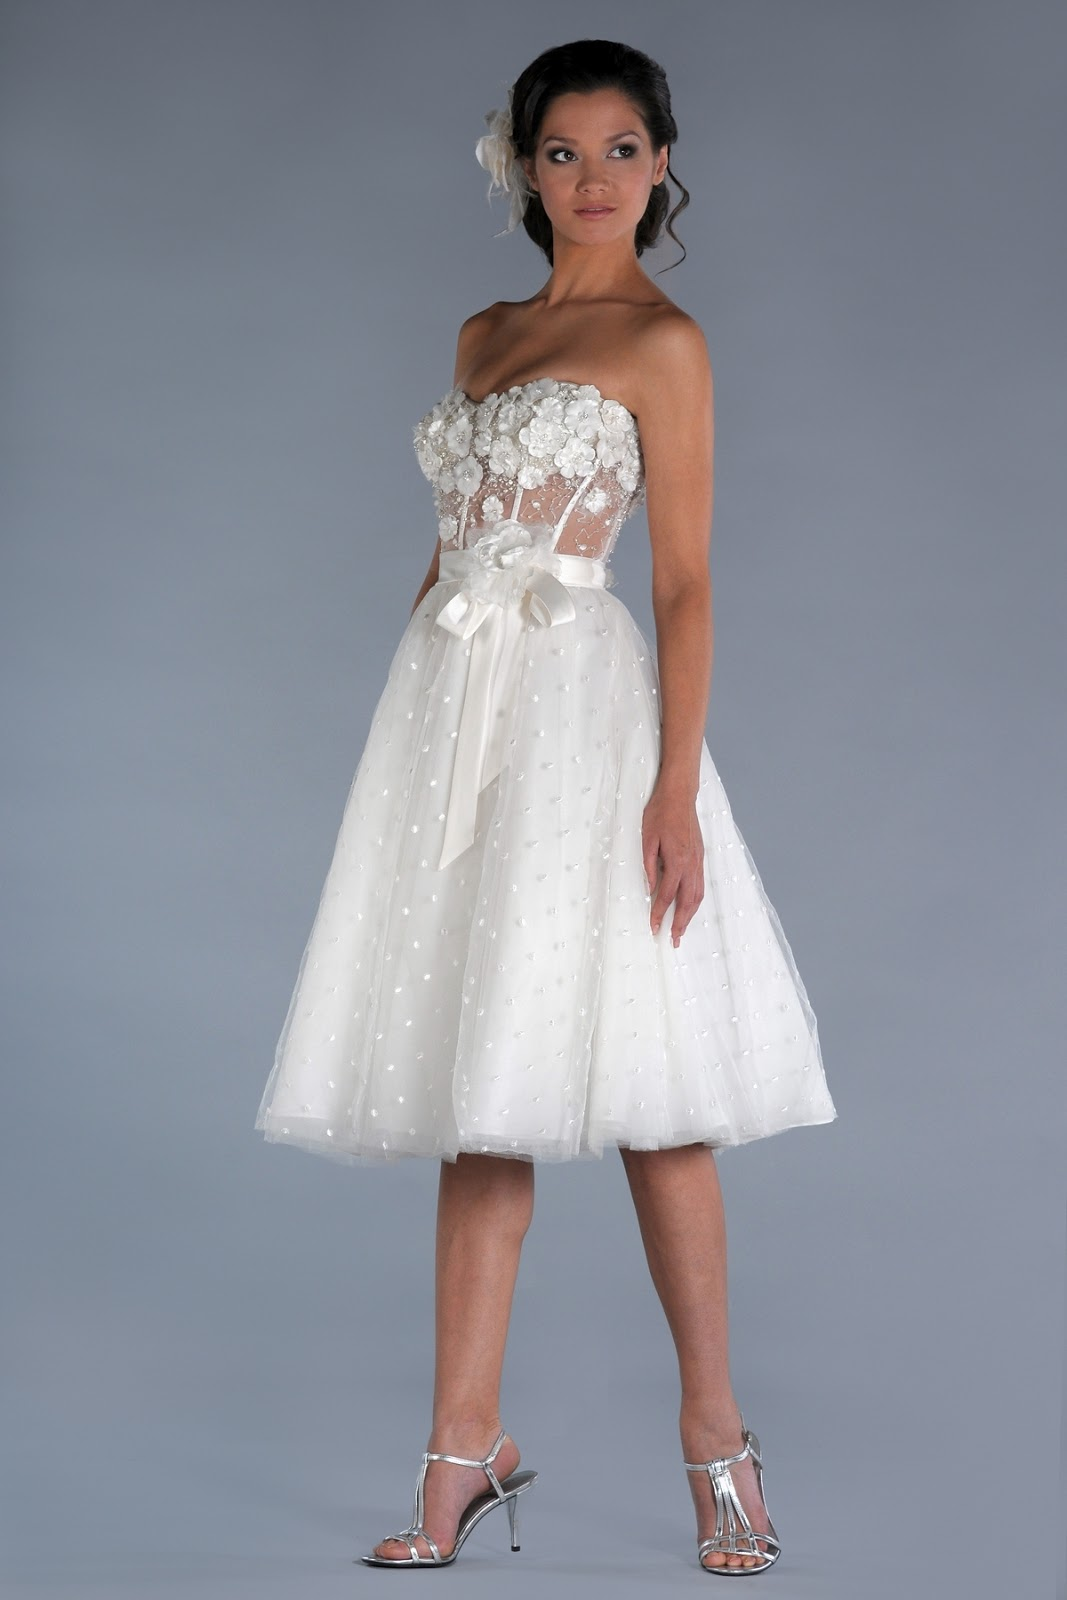 Dressybridal 5 cute short wedding dresses for summer for Wedding dress for a short bride